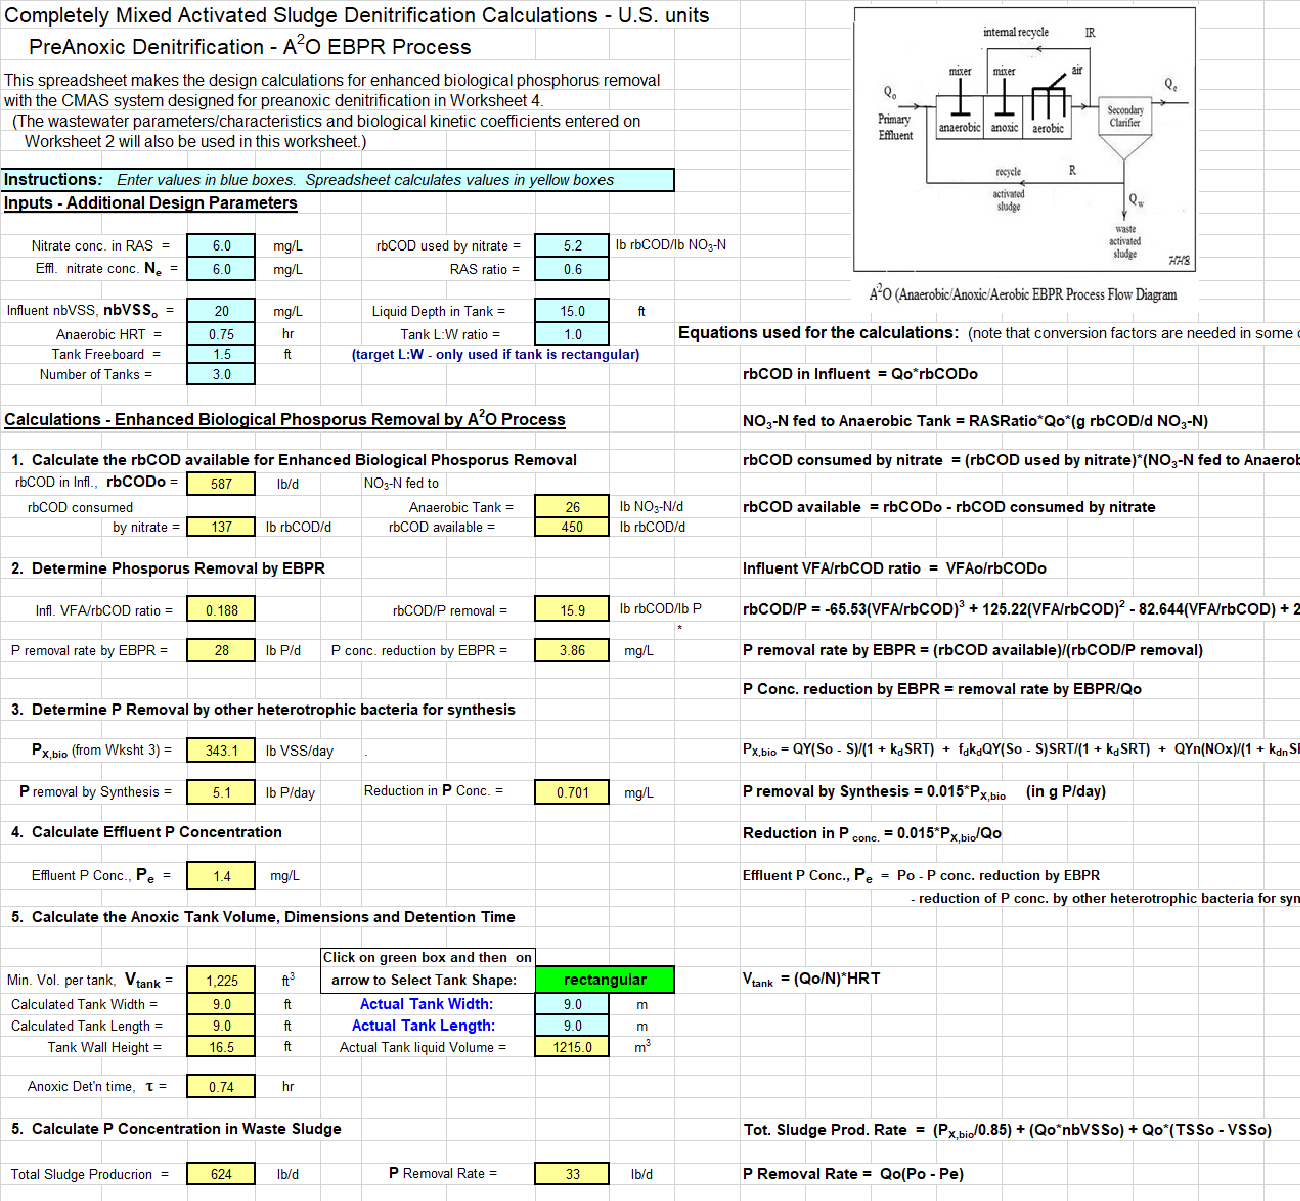 EBPR Design Calculations Spreadsheet Screenshot